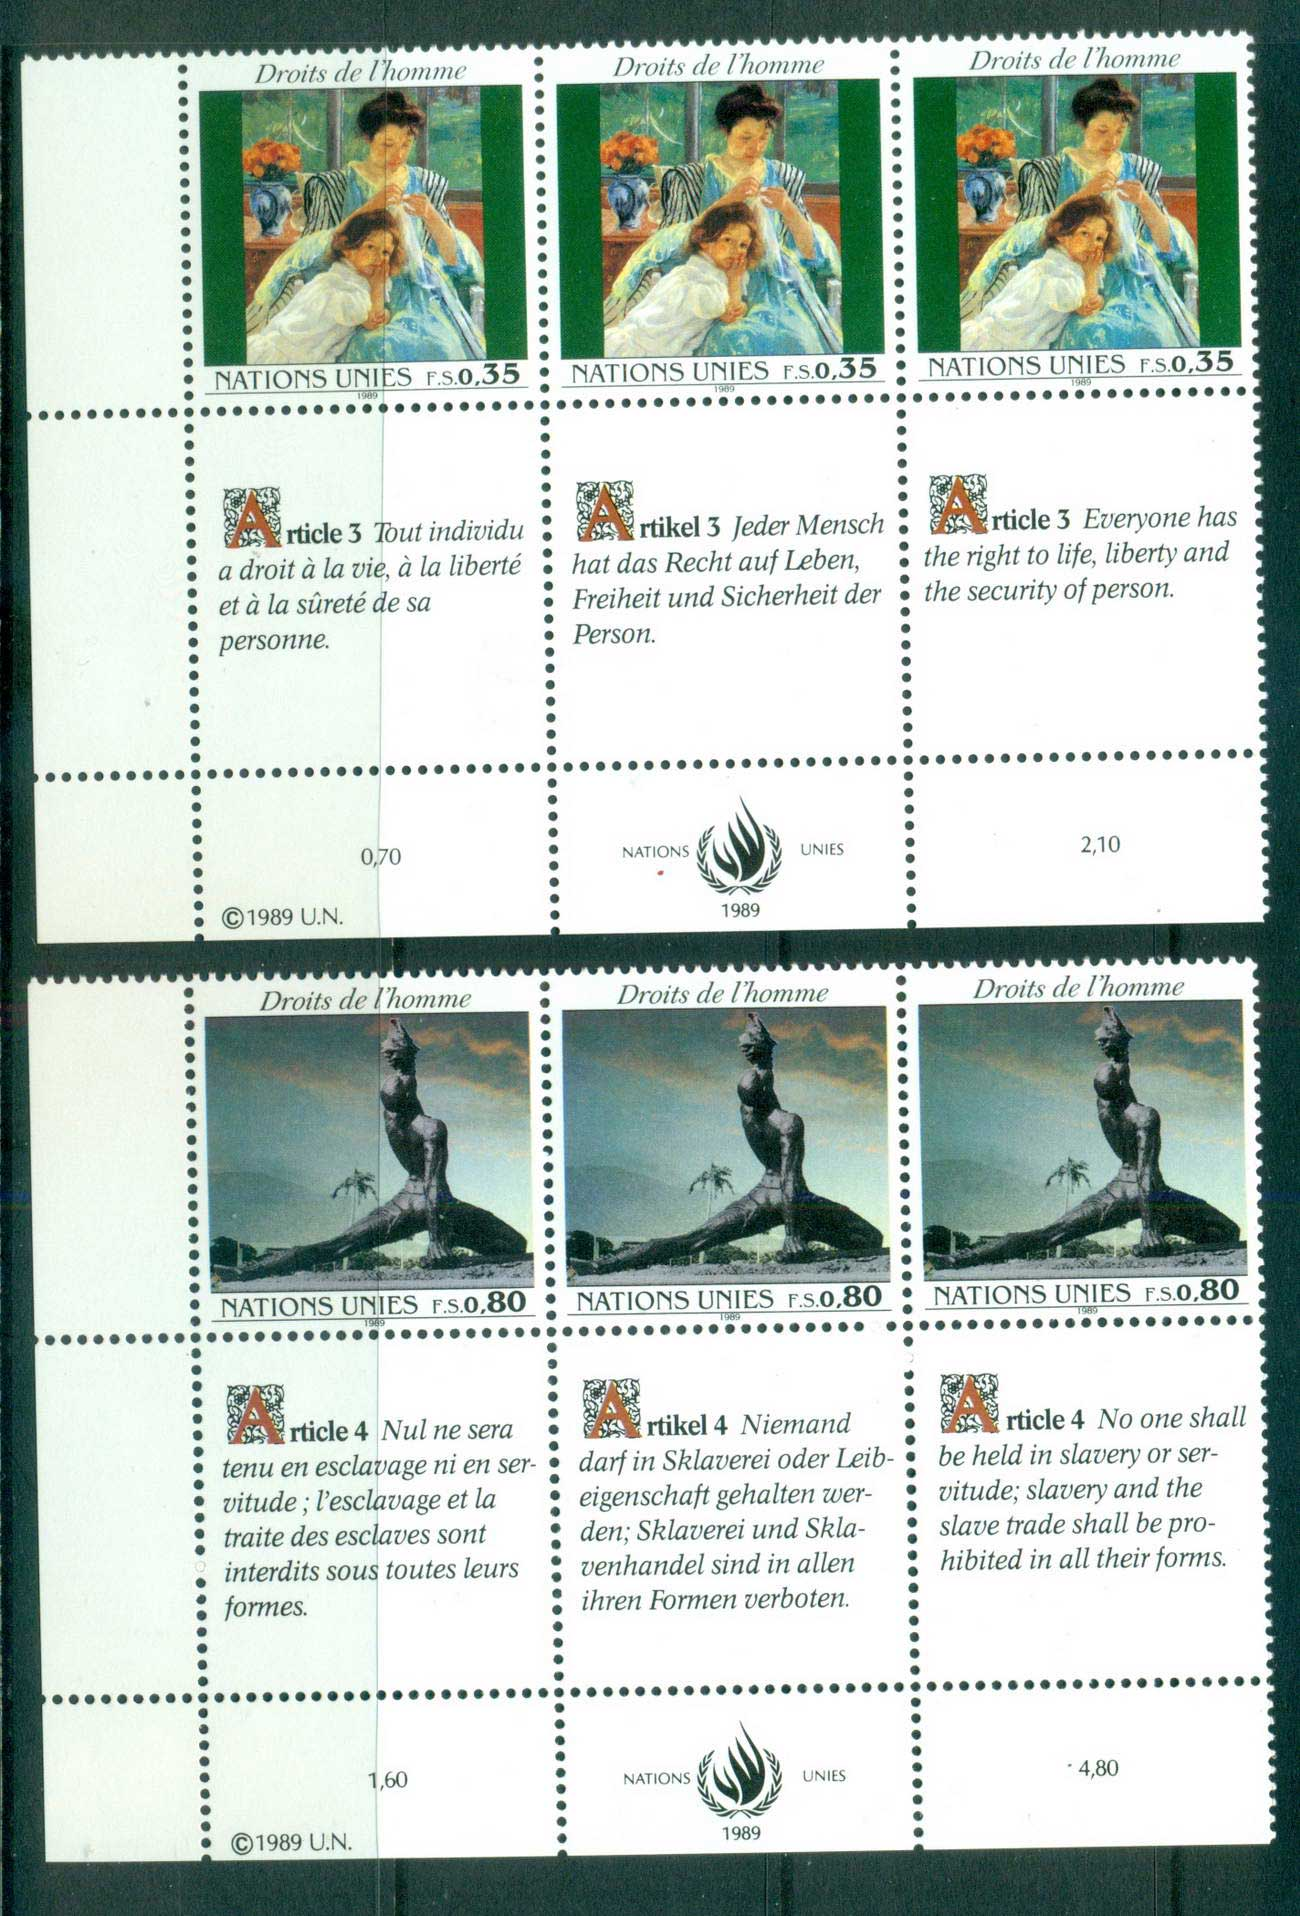 UN Geneva 1989 Human Rights 2x Str 3 CTO lot66065